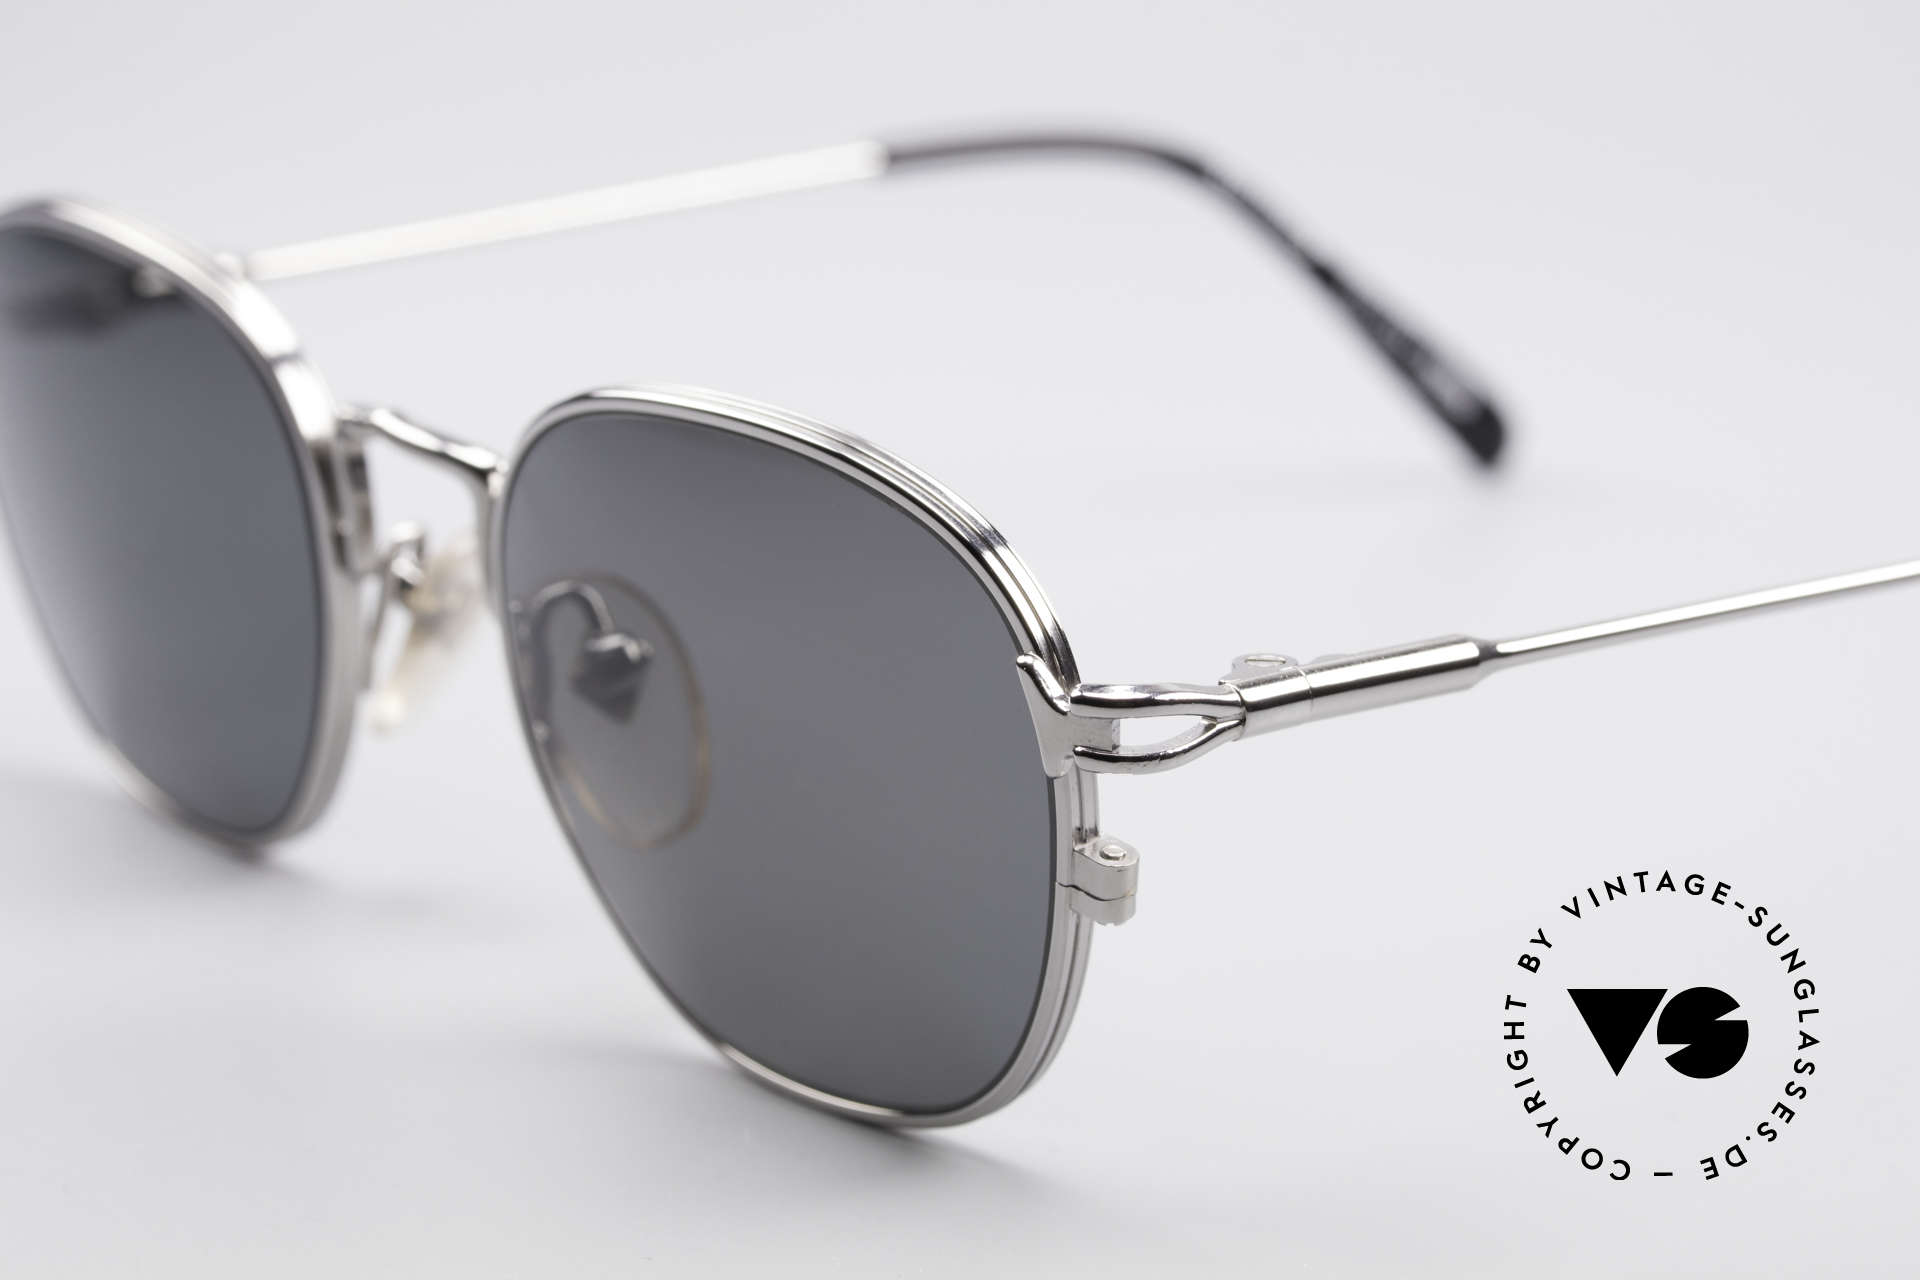 Jean Paul Gaultier 55-3182 Titanium Frame Polarized, unworn; one of a kind (like all our vintage 90's shades), Made for Men and Women